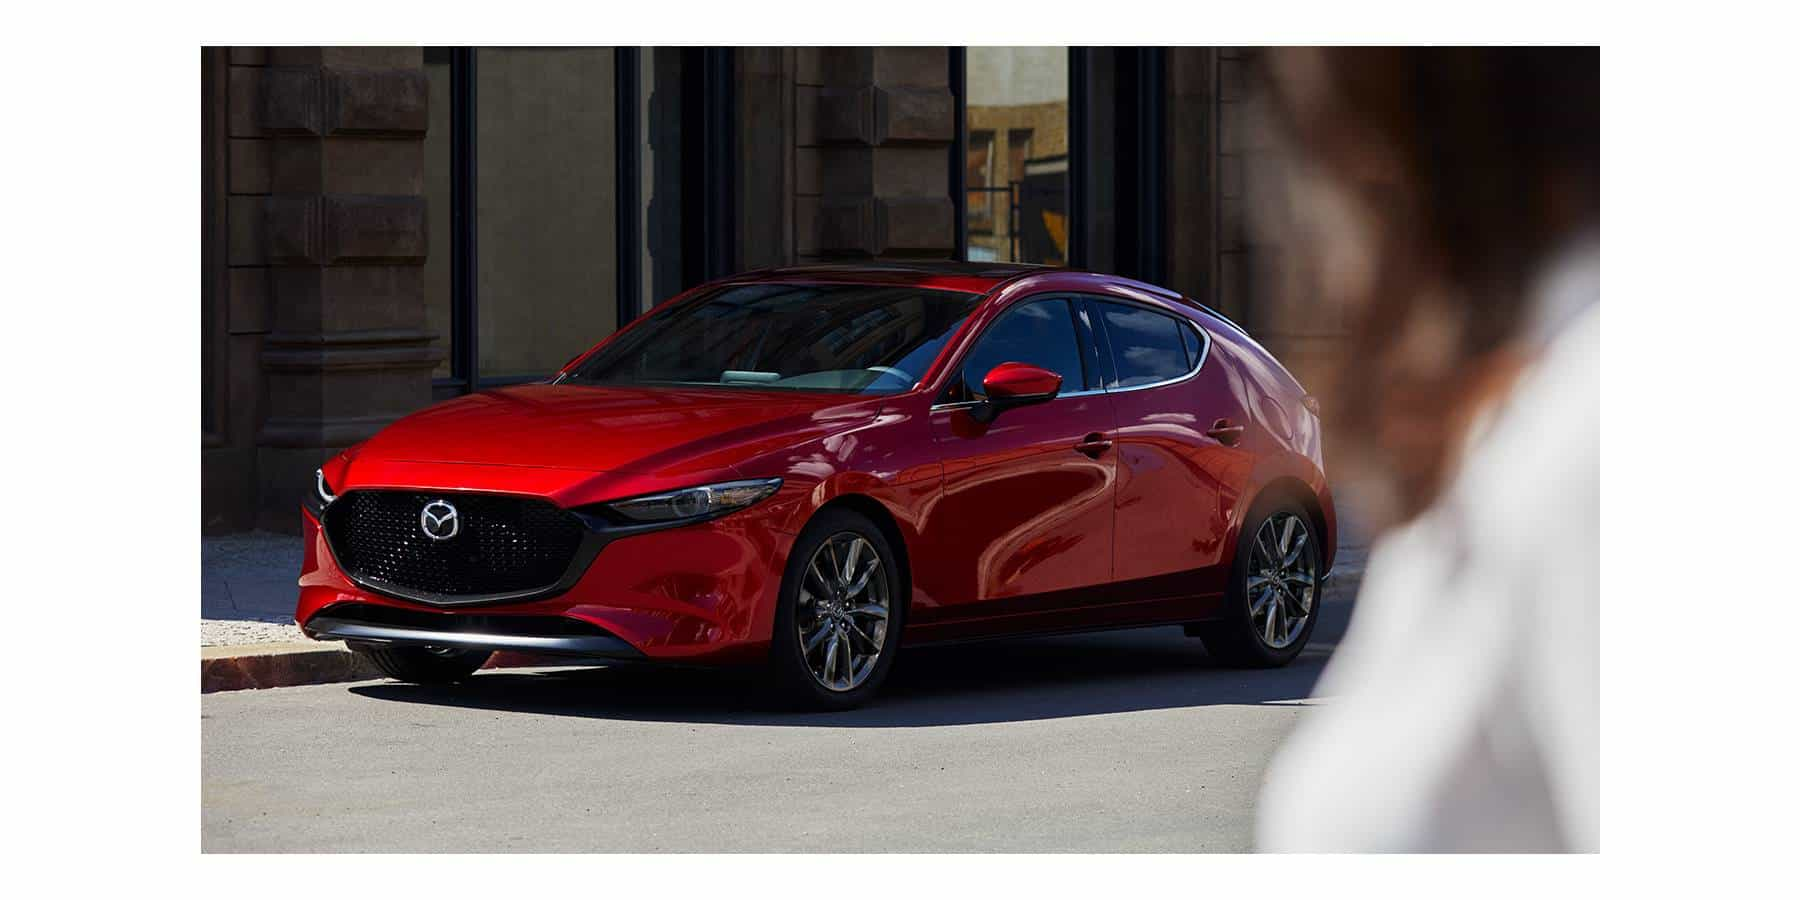 2019 Mazda 3 Hatchback Compact Car